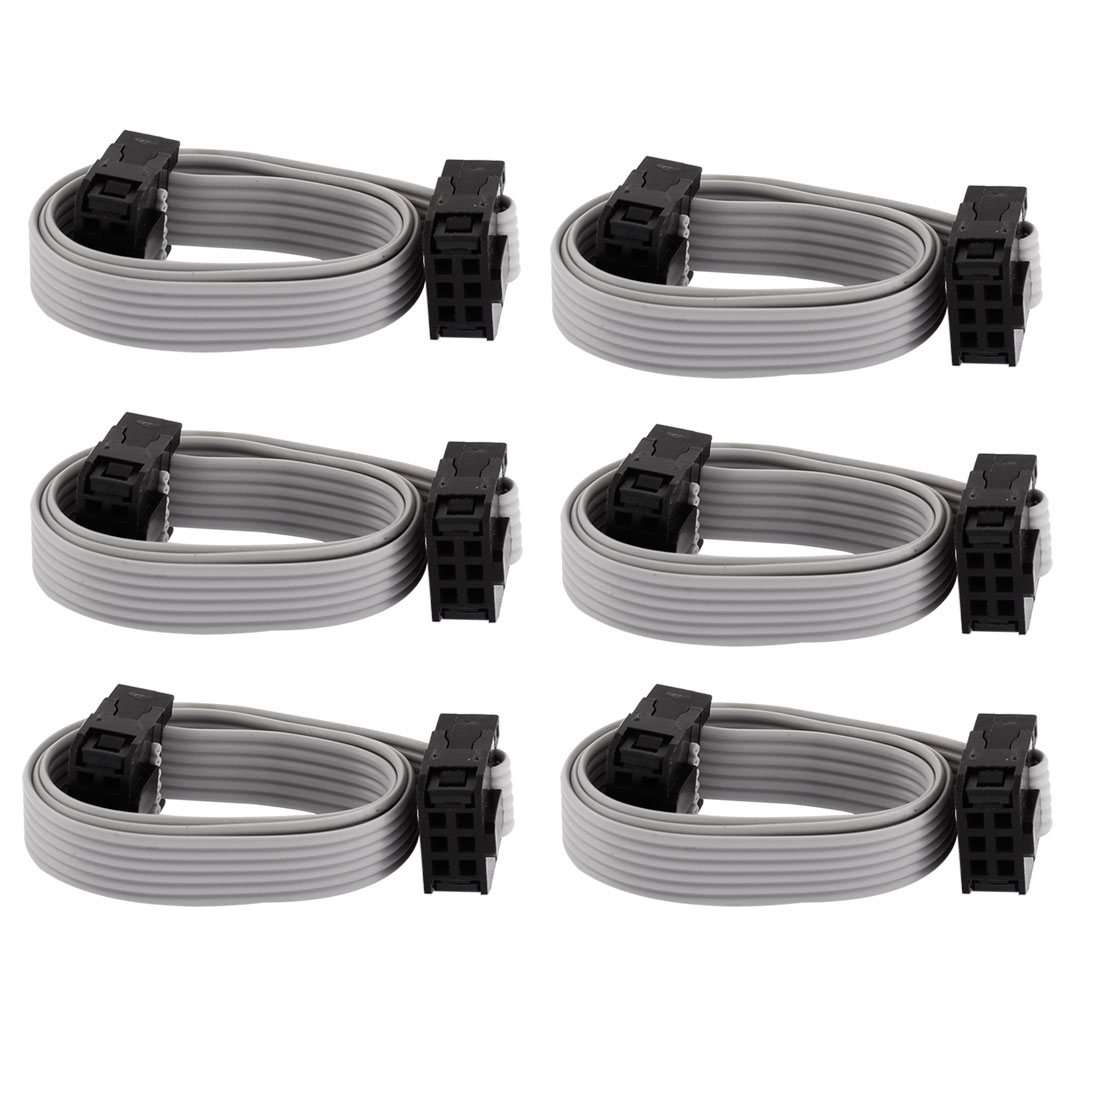 6 Pcs 2.54mm Pitch IDC Socket Flat Ribbon Cable 30cm Long